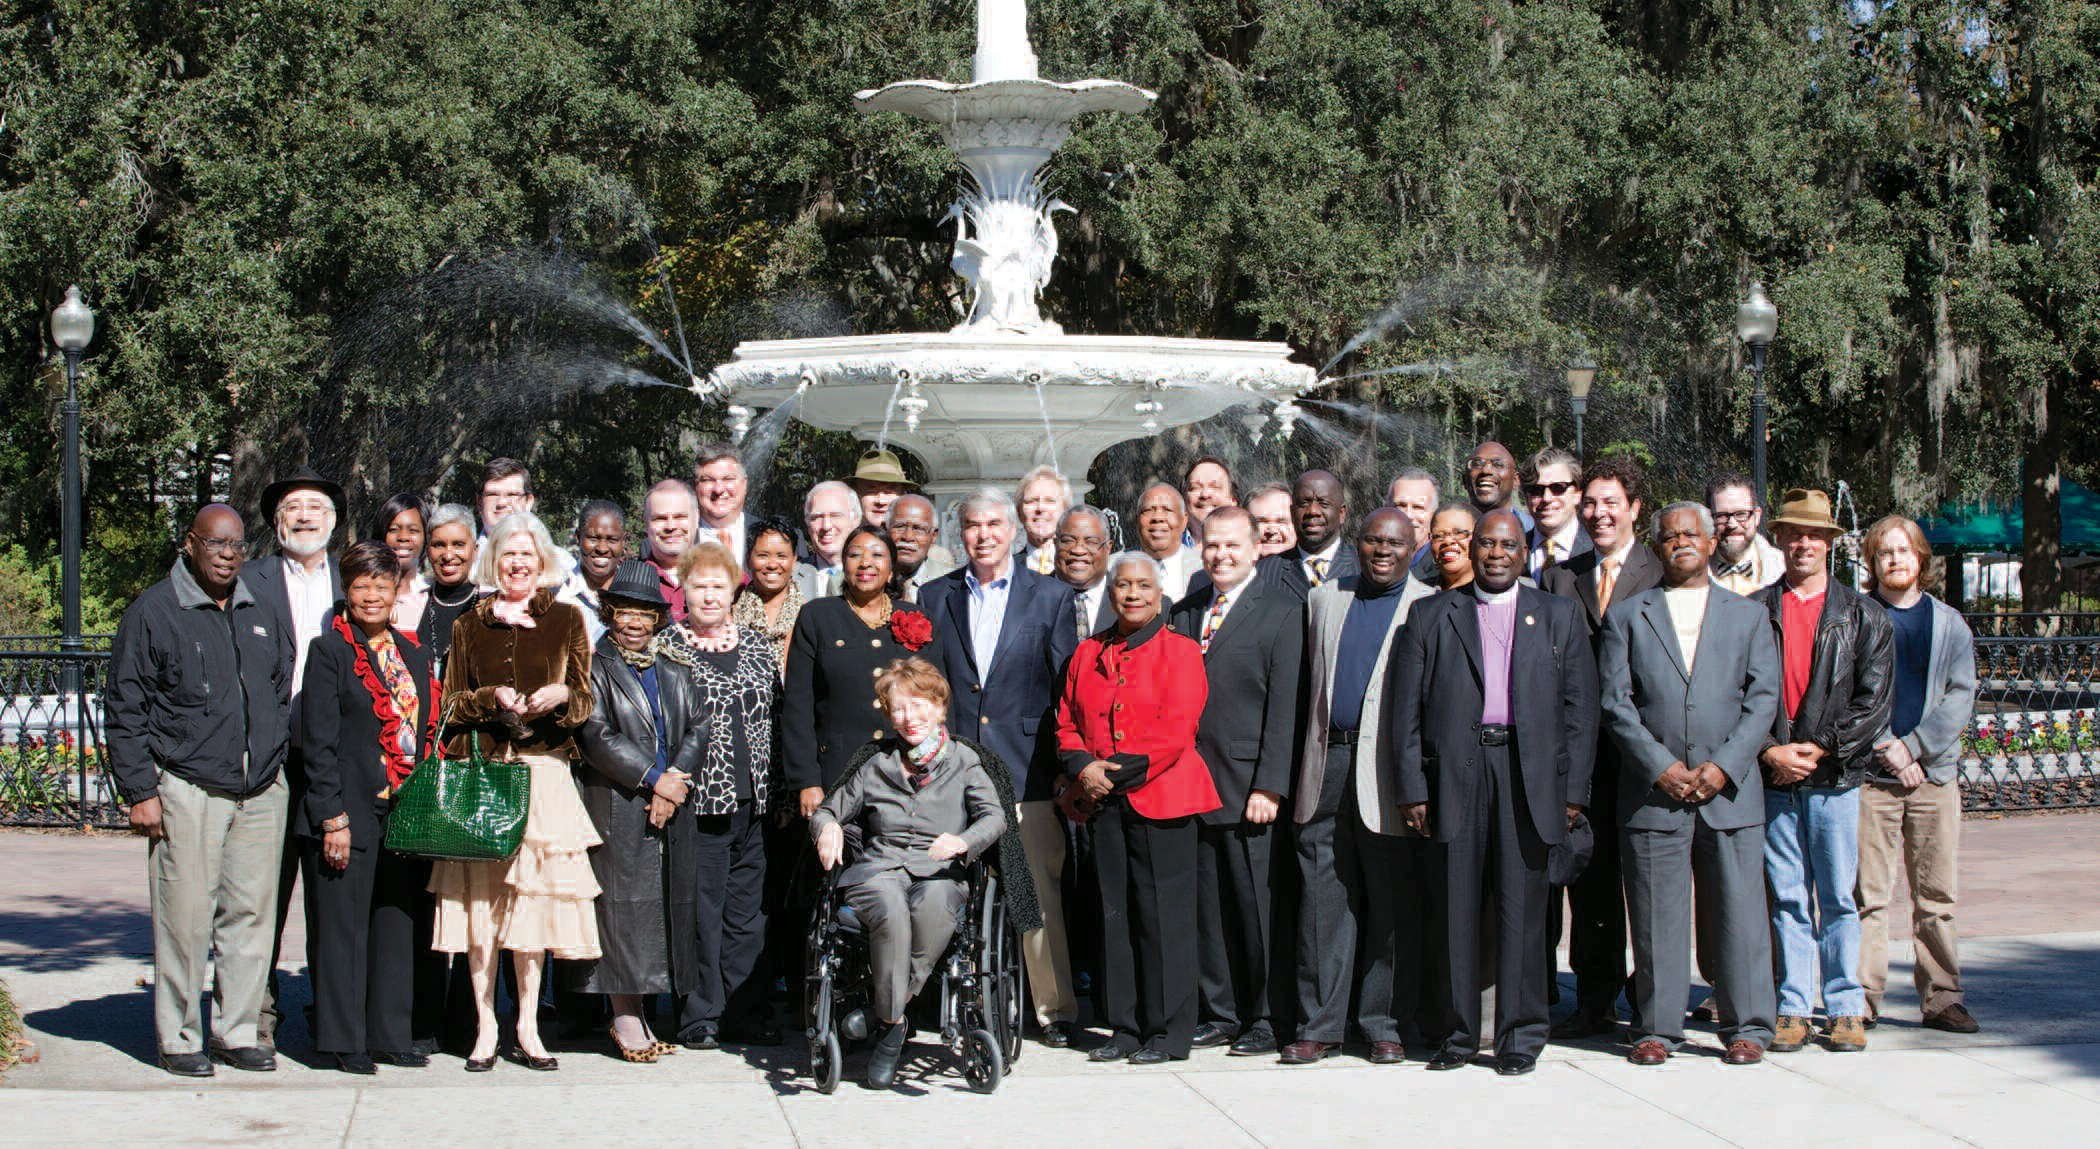 A few of Edna Jackson's key supporters joined her for a group photo last week in Forsyth Park.